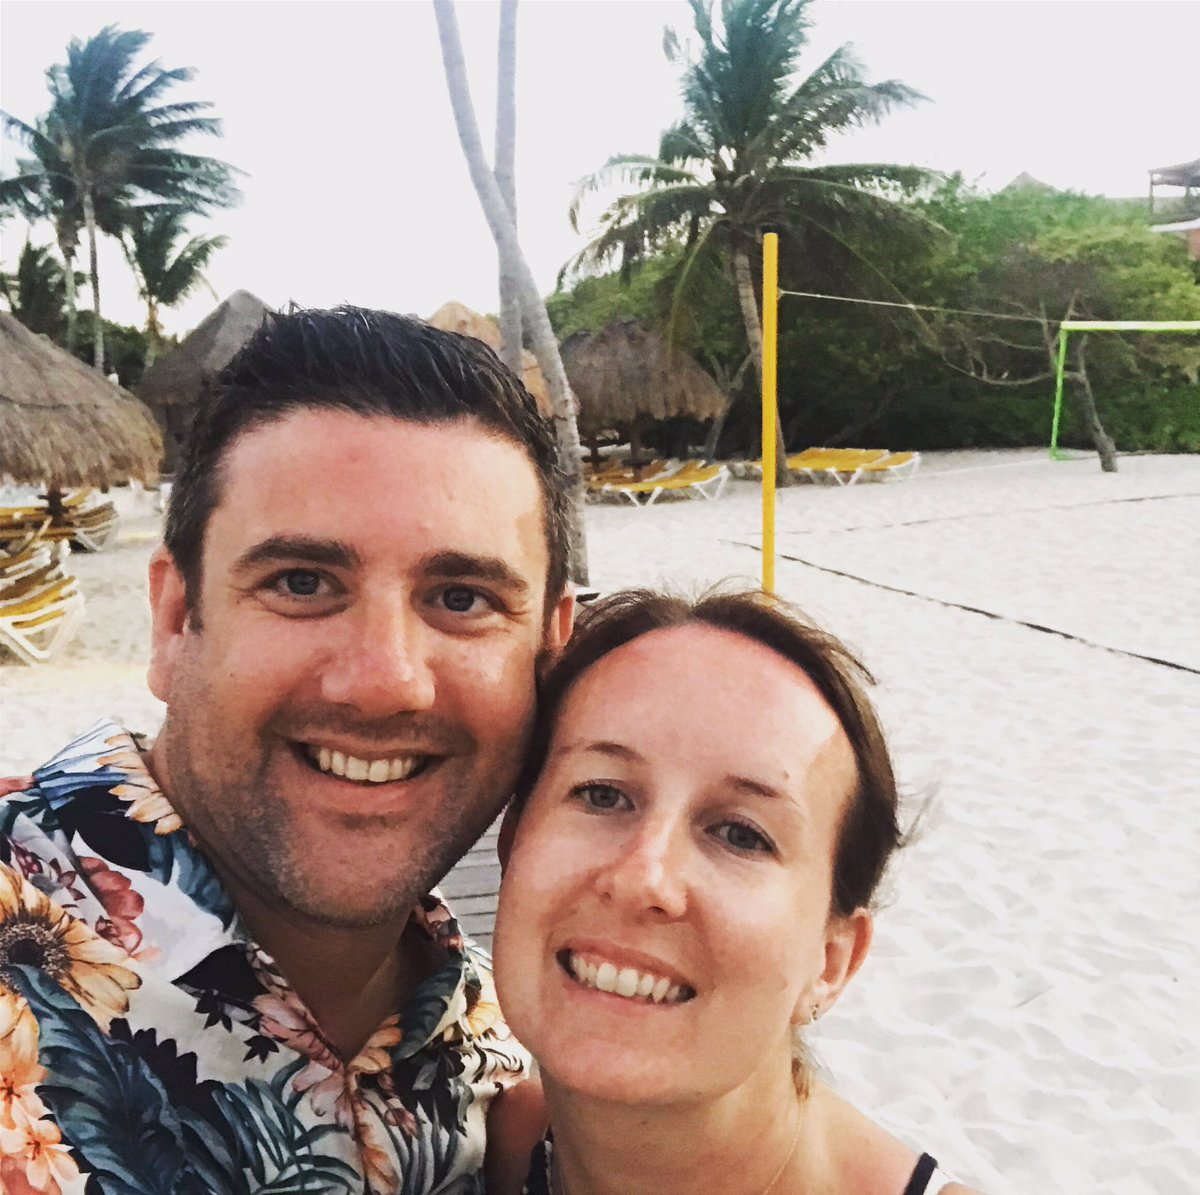 Happy times on holiday #mexico